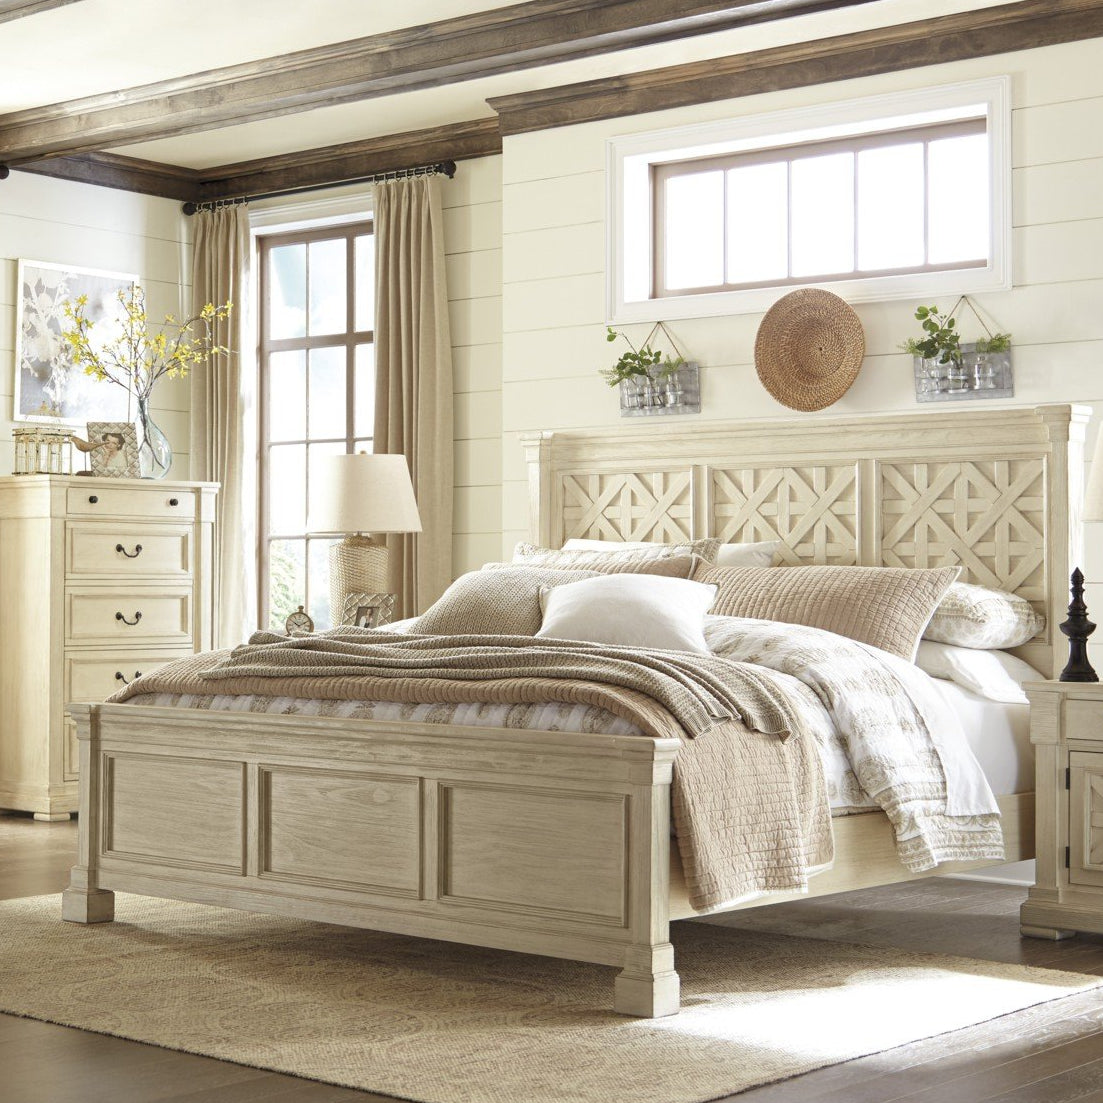 Victor Classic - Lifestyle Furniture